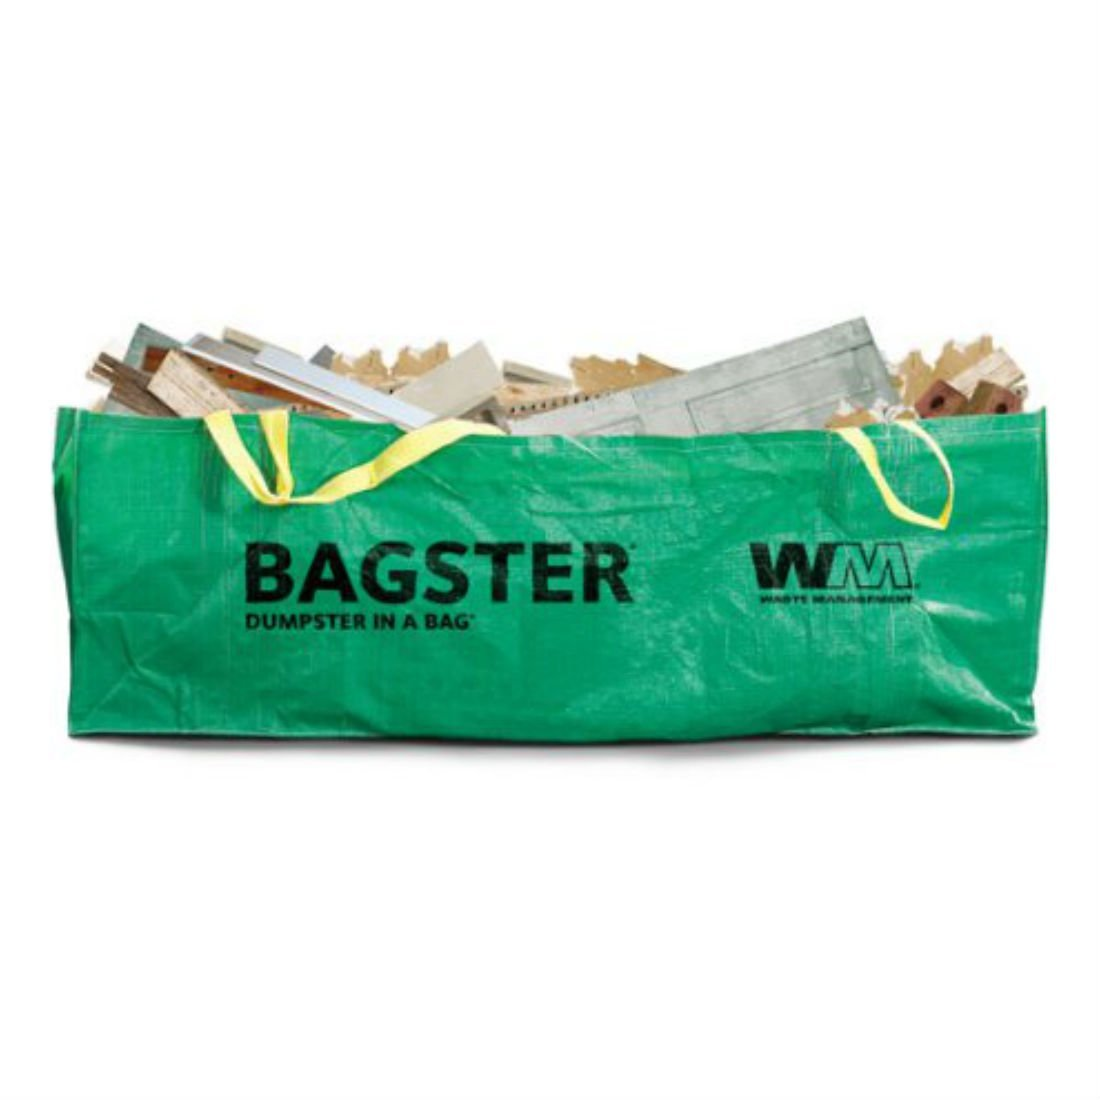 Bagster Coupon Code Waste Management